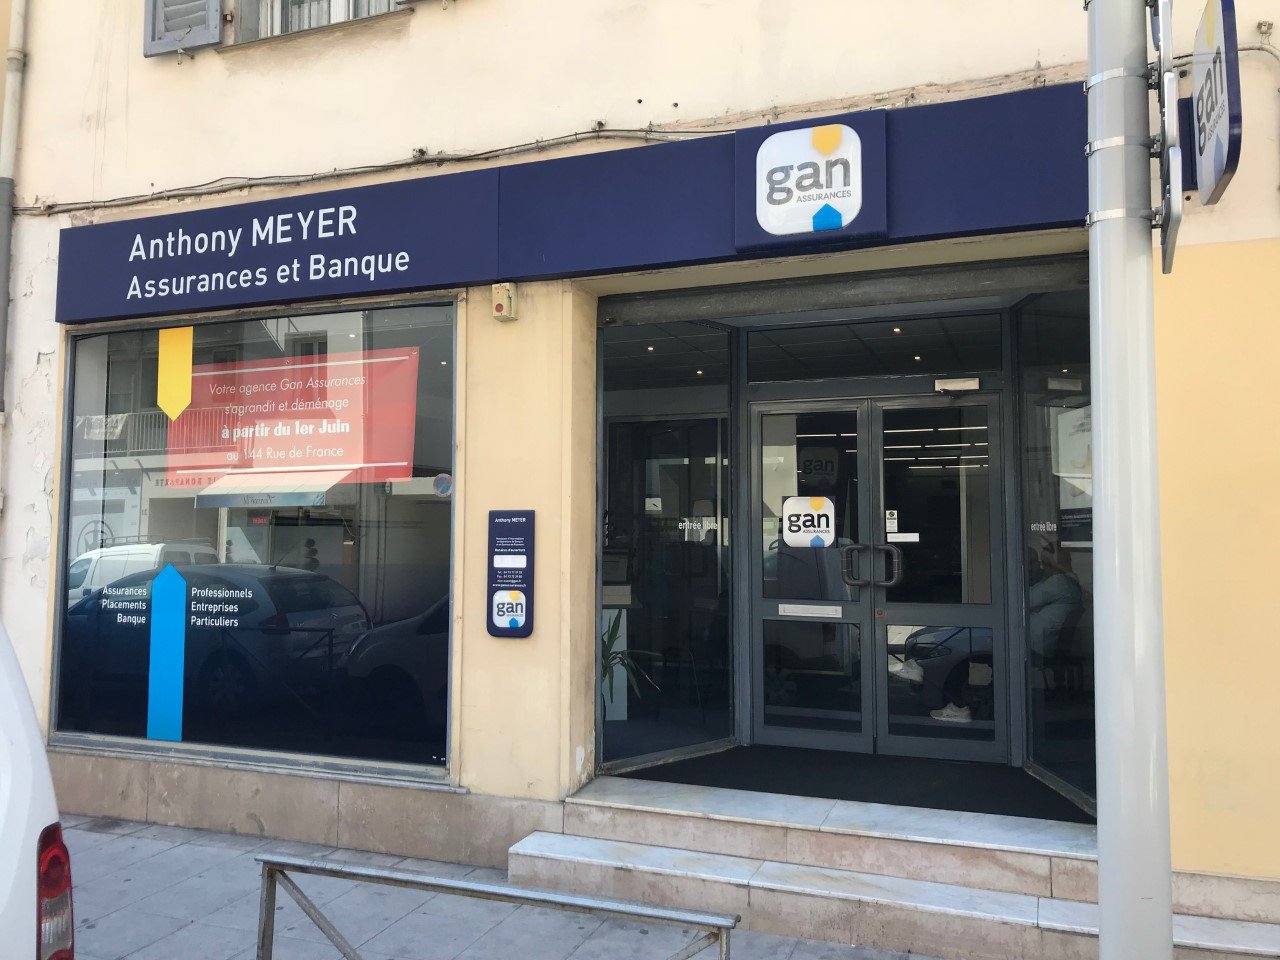 LOCATION PURE - NICE OUEST - 100 M²